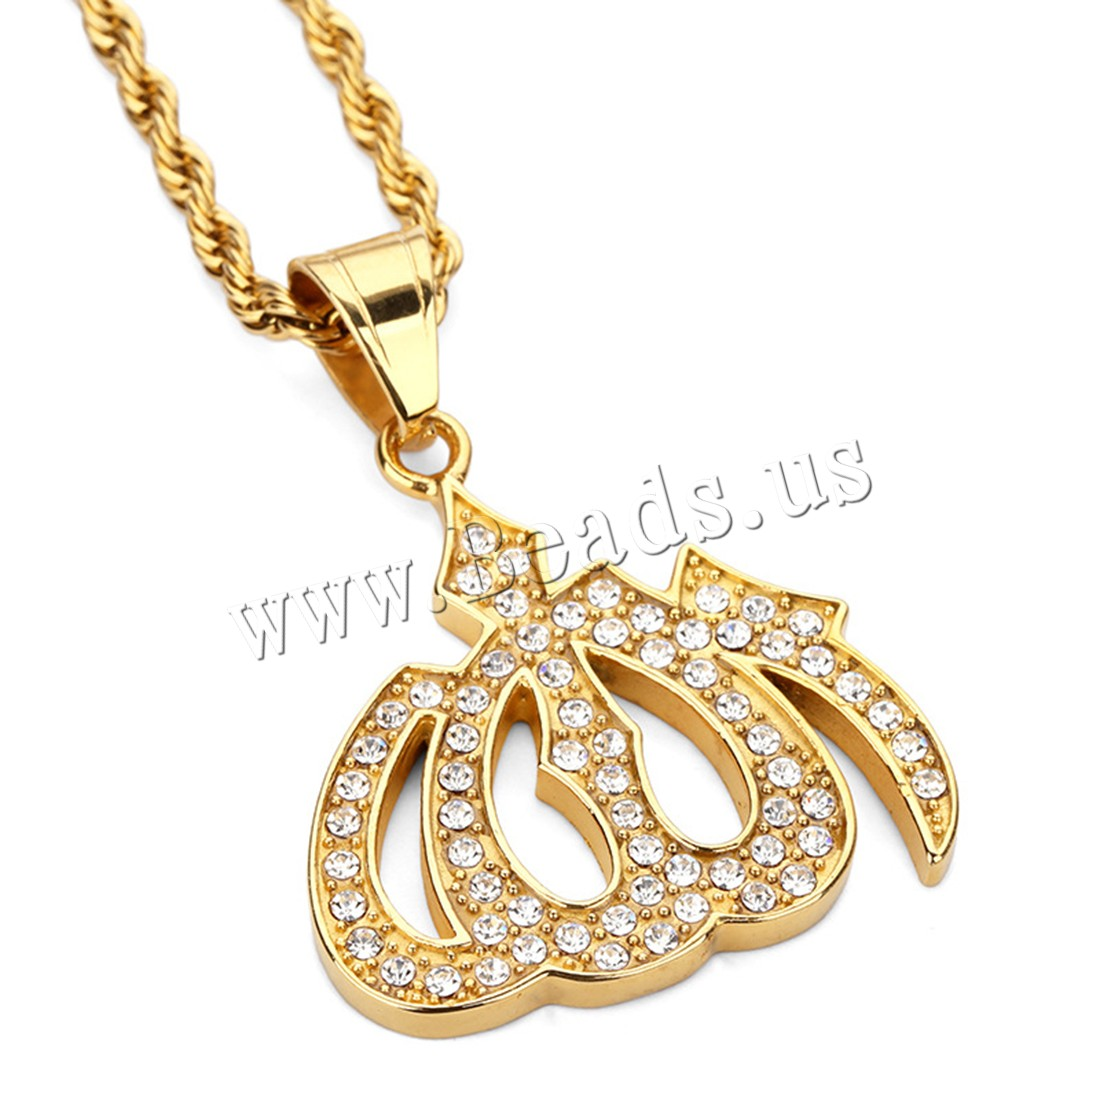 Buy Stainless Steel Sweater Necklace Lamp Aladdin gold color plated Unisex & rope chain & rhinestone 30x30mm 2.8mm Sold Per Approx 23.5 Inch Strand